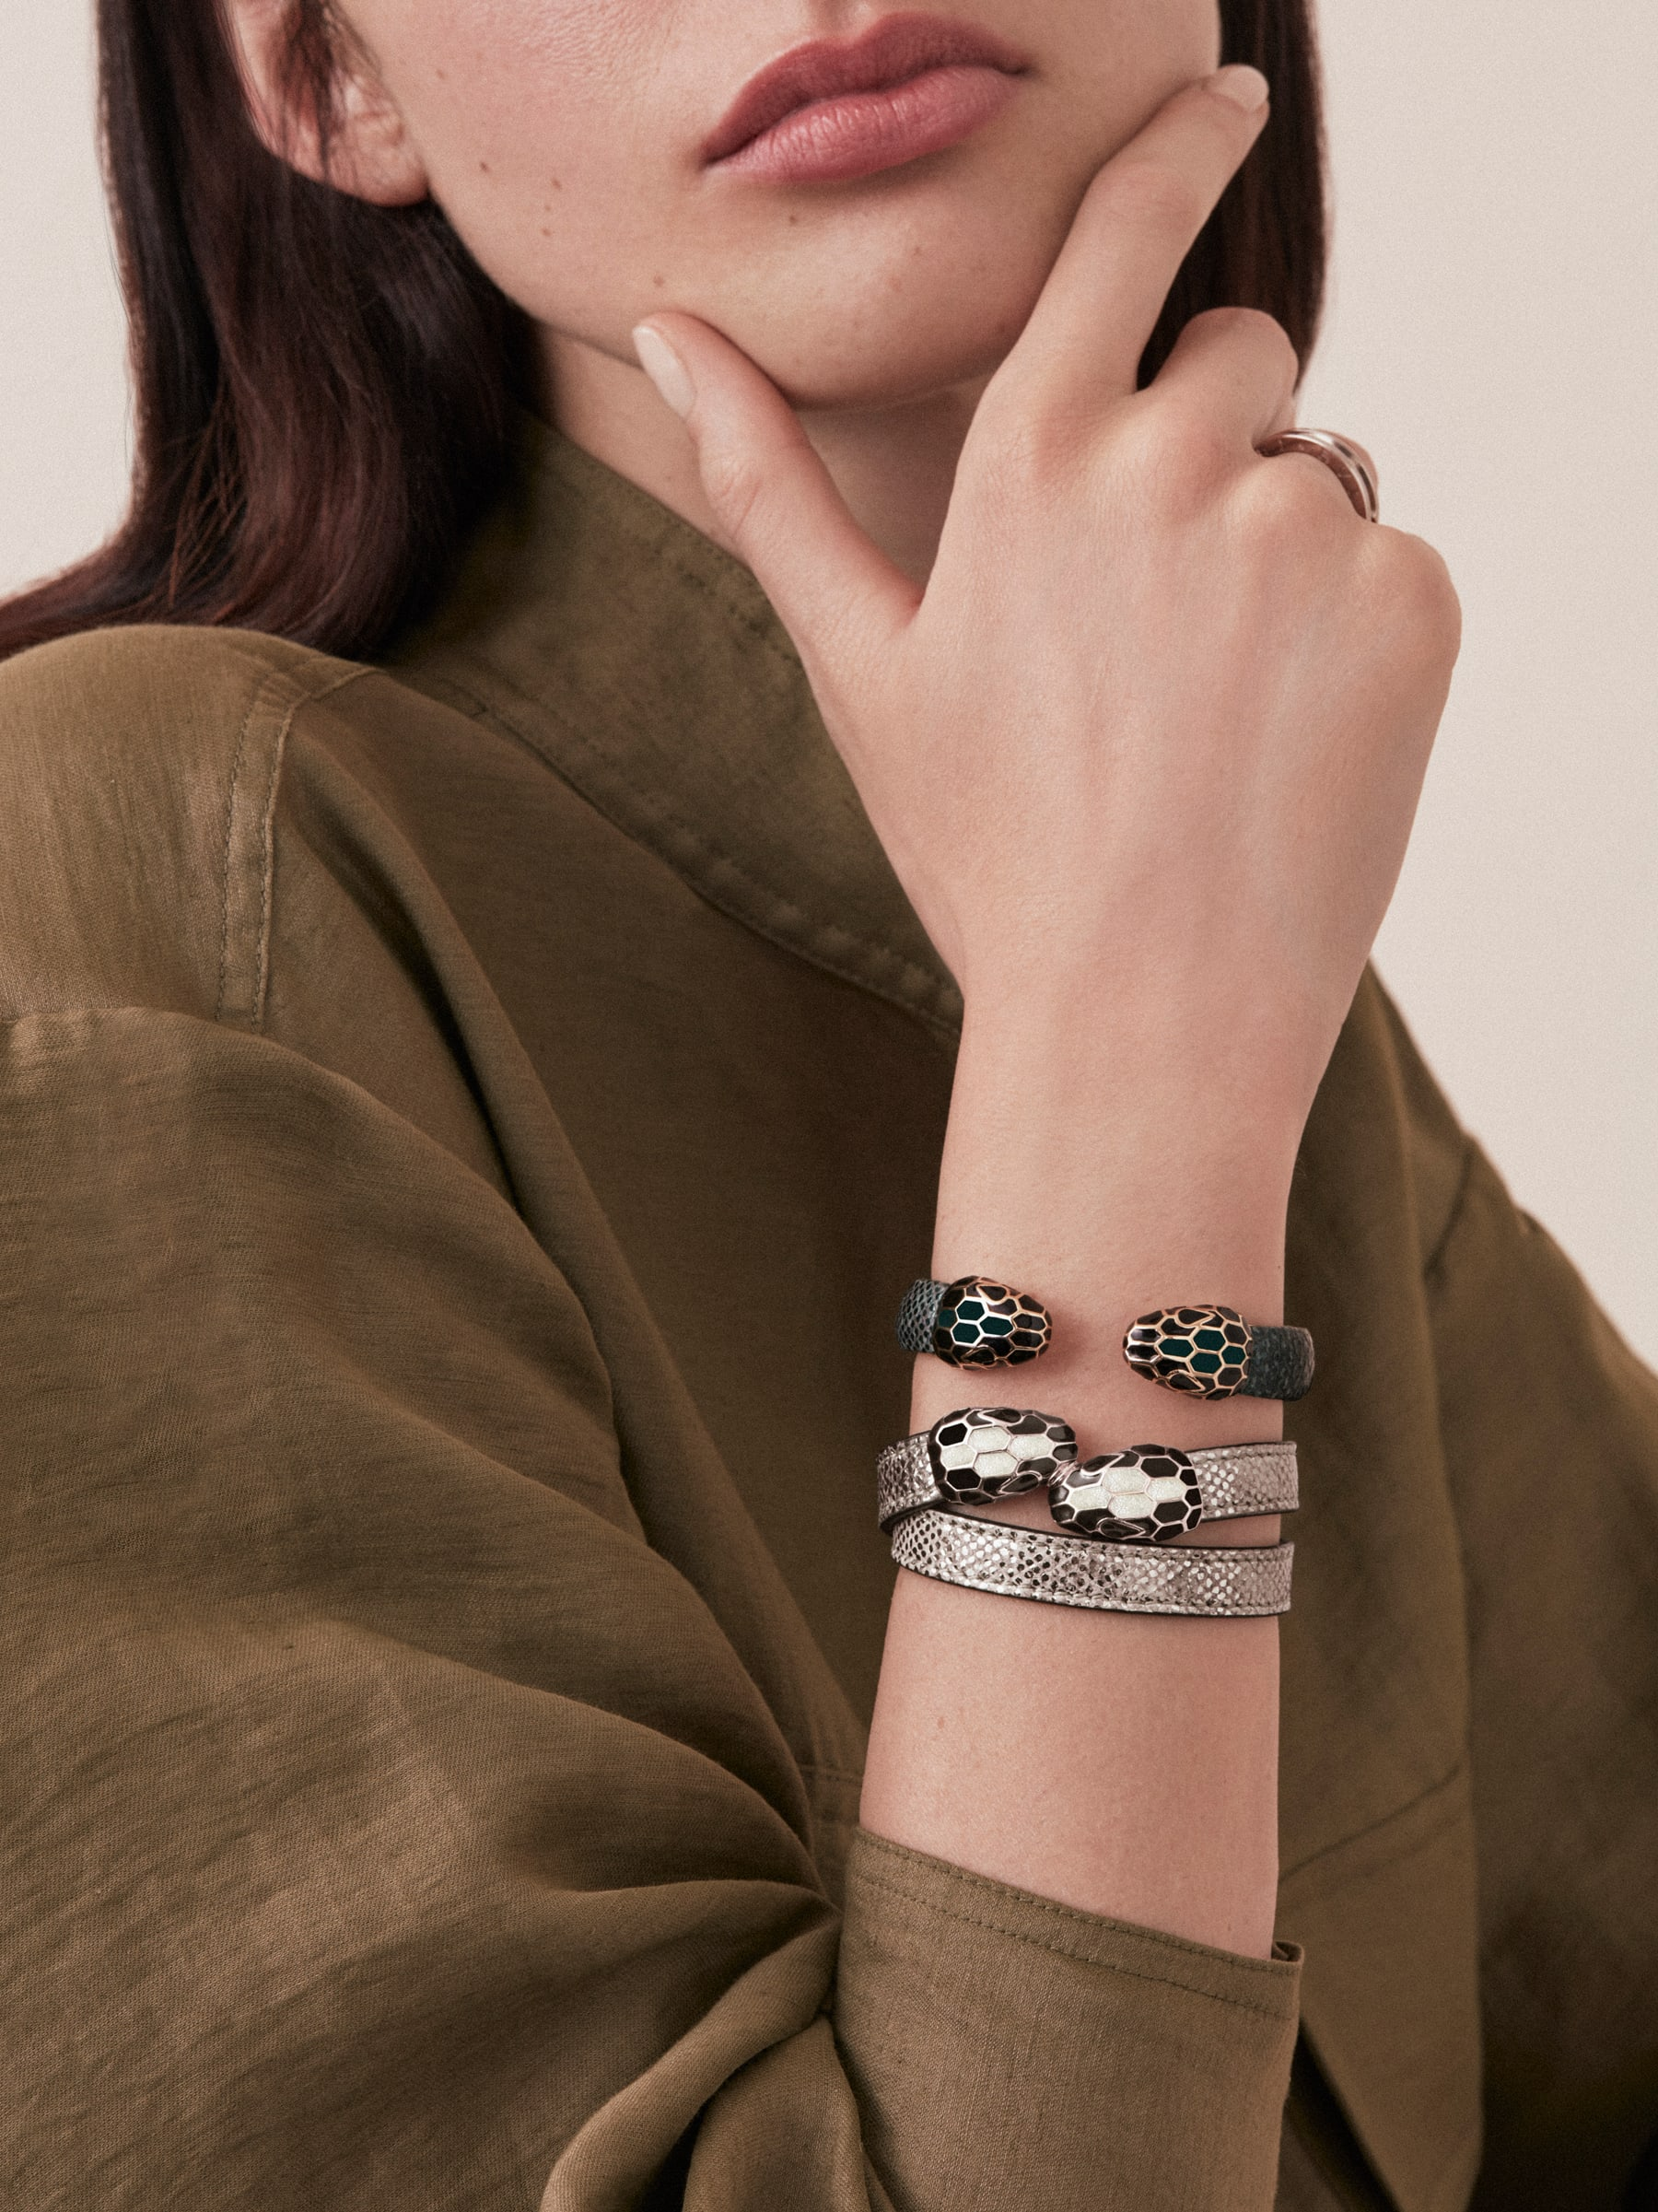 Serpenti Forever multi-coiled bracelet in milky opal metallic karung skin, with light gold-plated brass hardware. Iconic contraire snakehead décor in black and glitter milky opal enamel, with black enamel eyes. MCSerp-MK-MO image 2